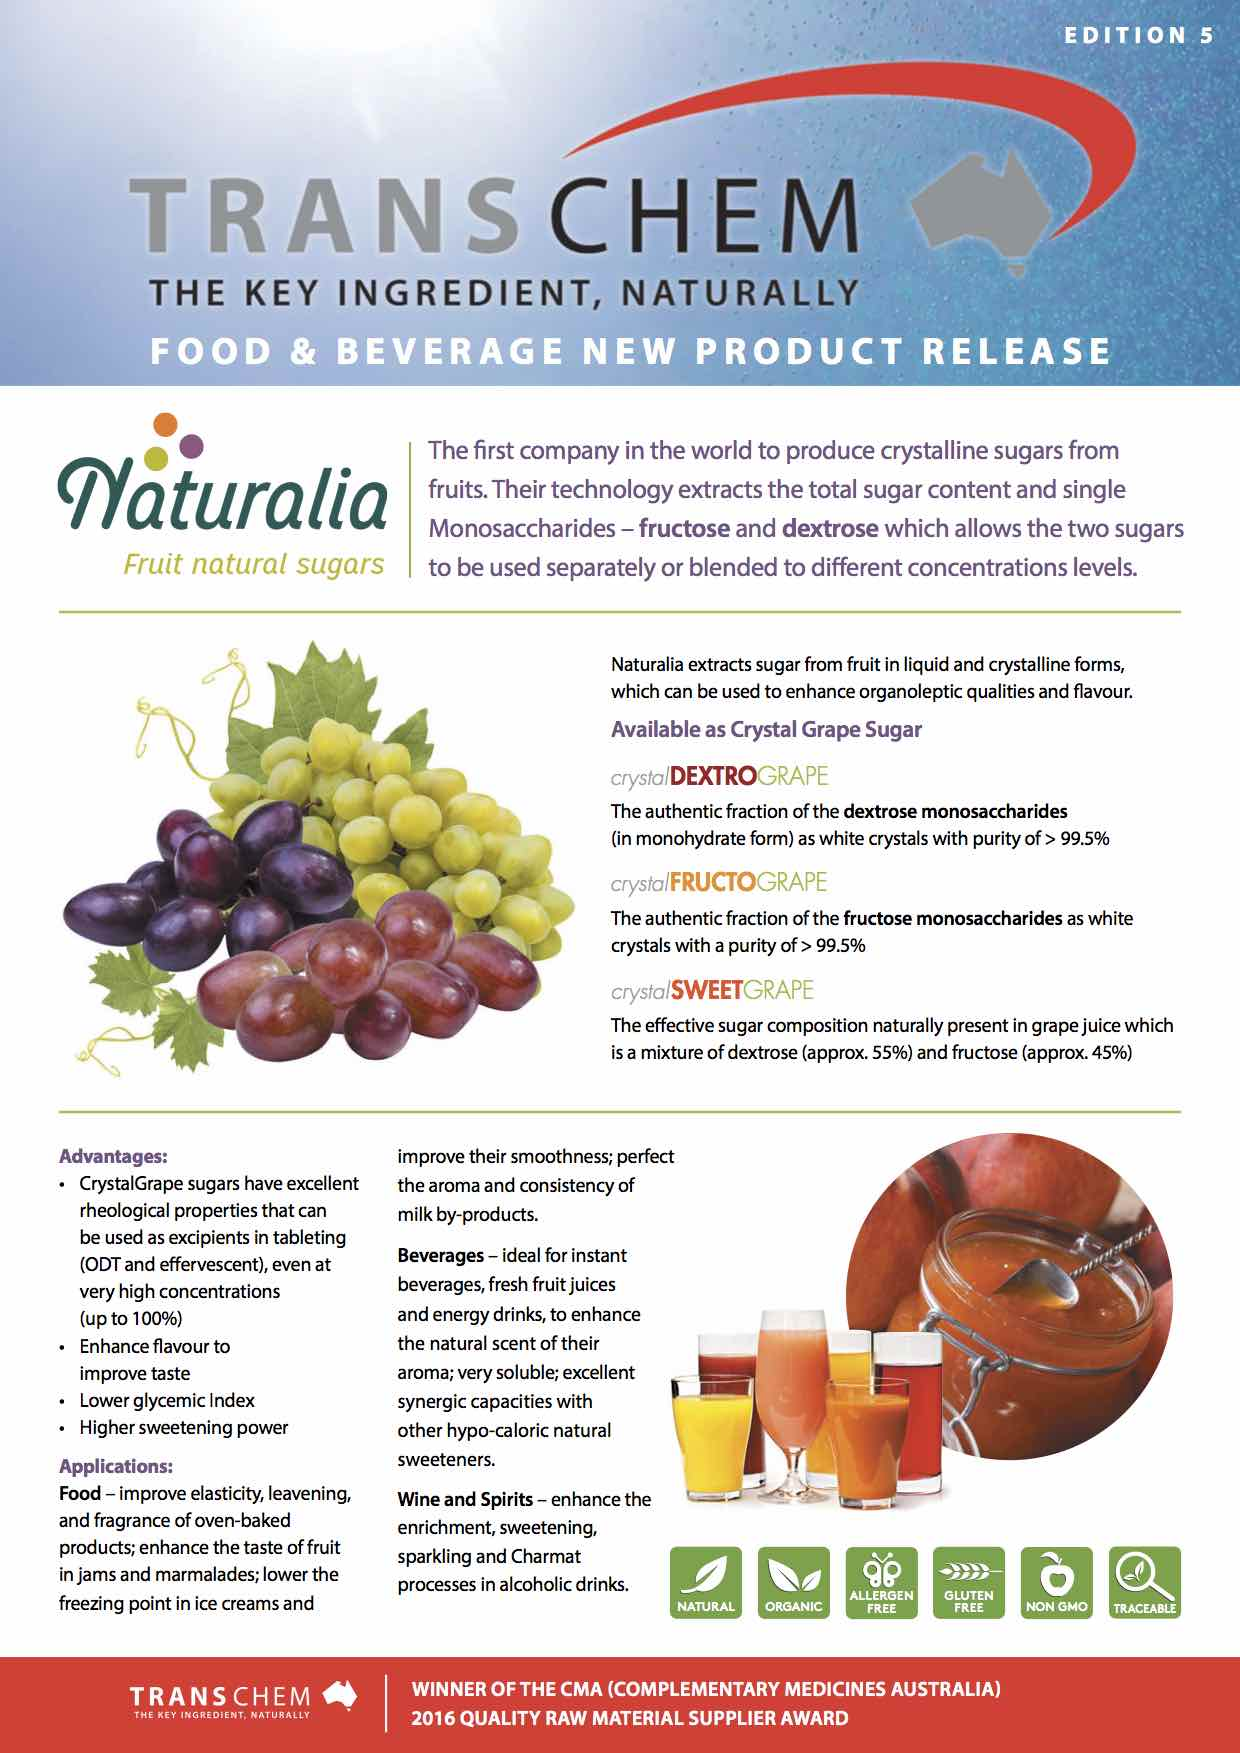 Food & Beverage Edition 5 - new product releases - August 2017